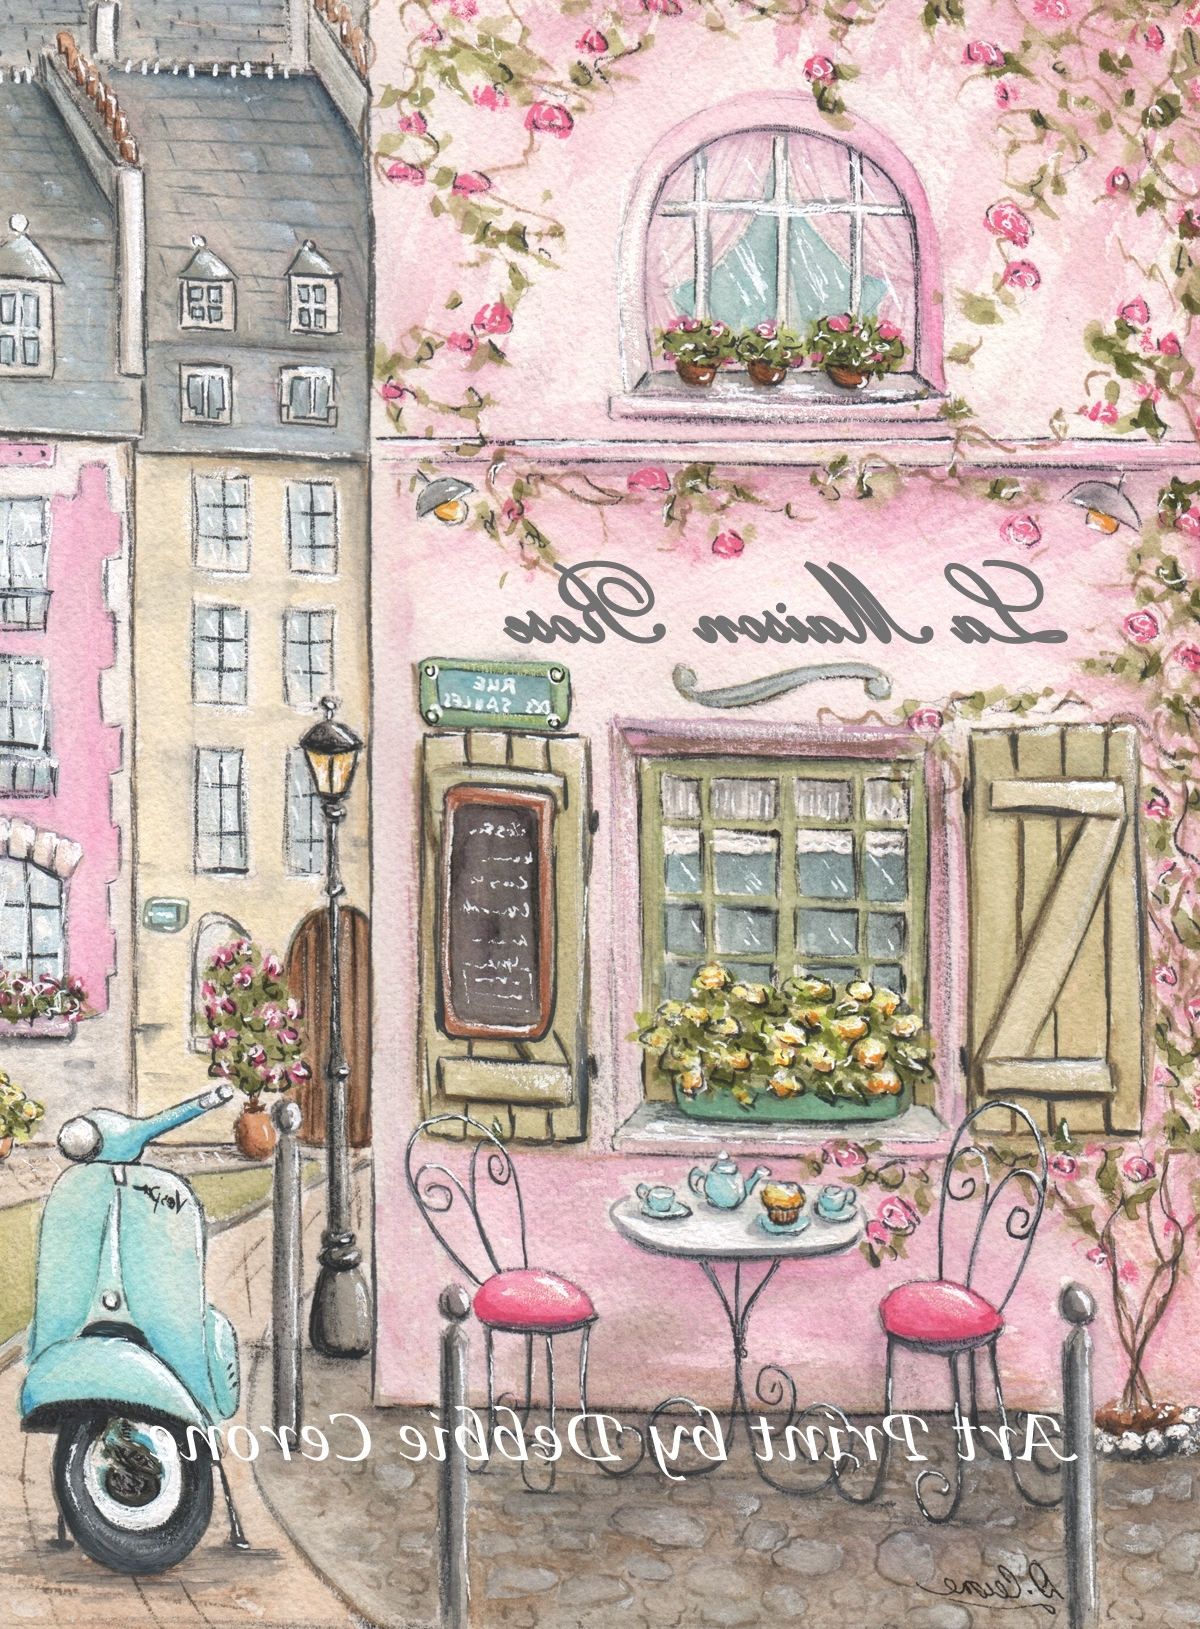 Paris Bedroom Decor, Nursery Girl Paris Art, Paris Decor Within Favorite Paris Theme Nursery Wall Art (View 7 of 15)